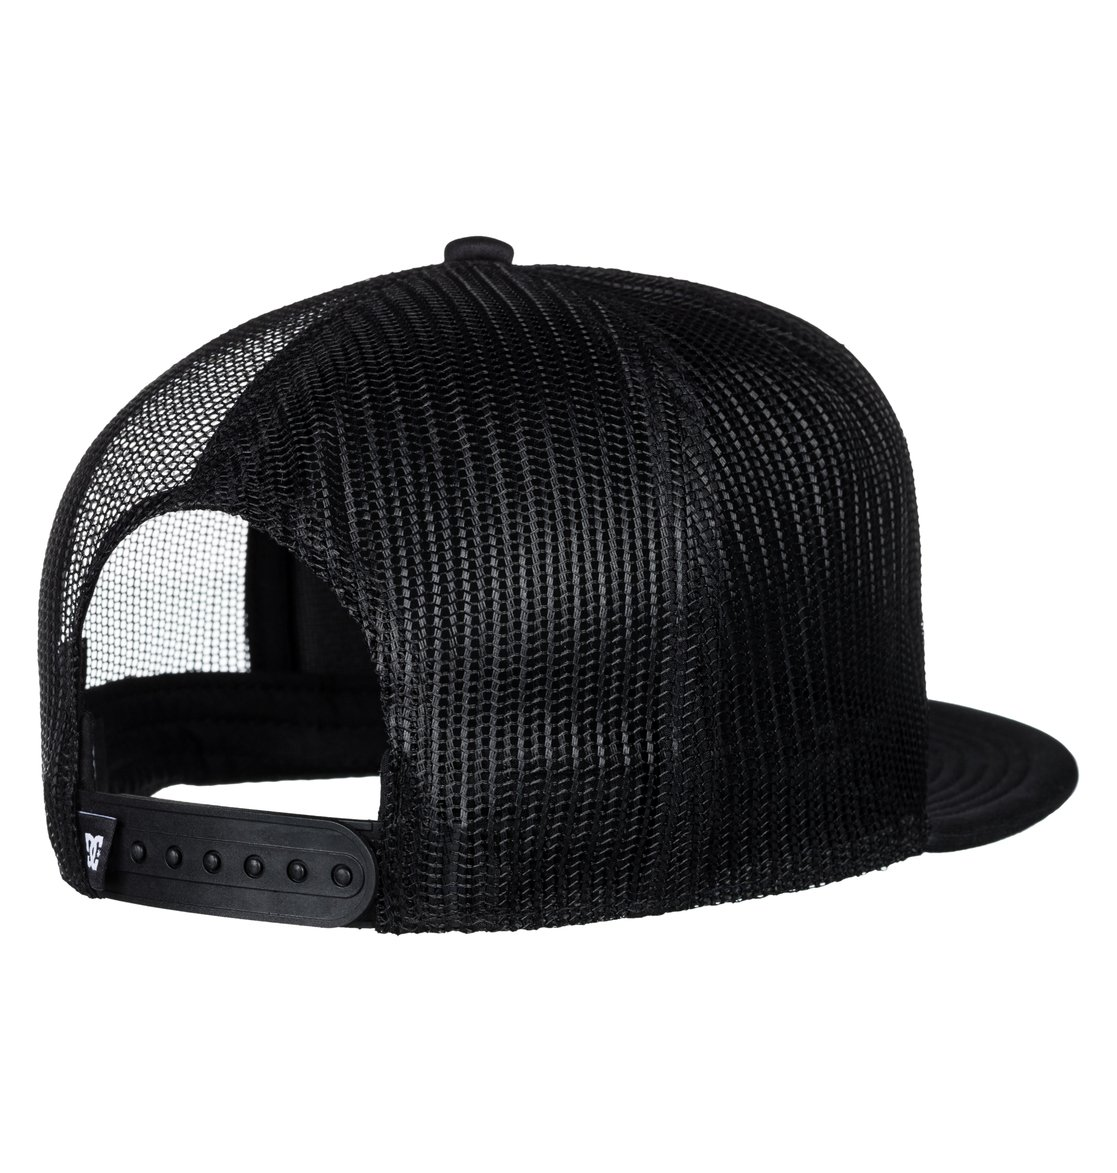 DC-Shoes-Madglads-Casquette-trucker-Homme-ONE-SIZE-Noir